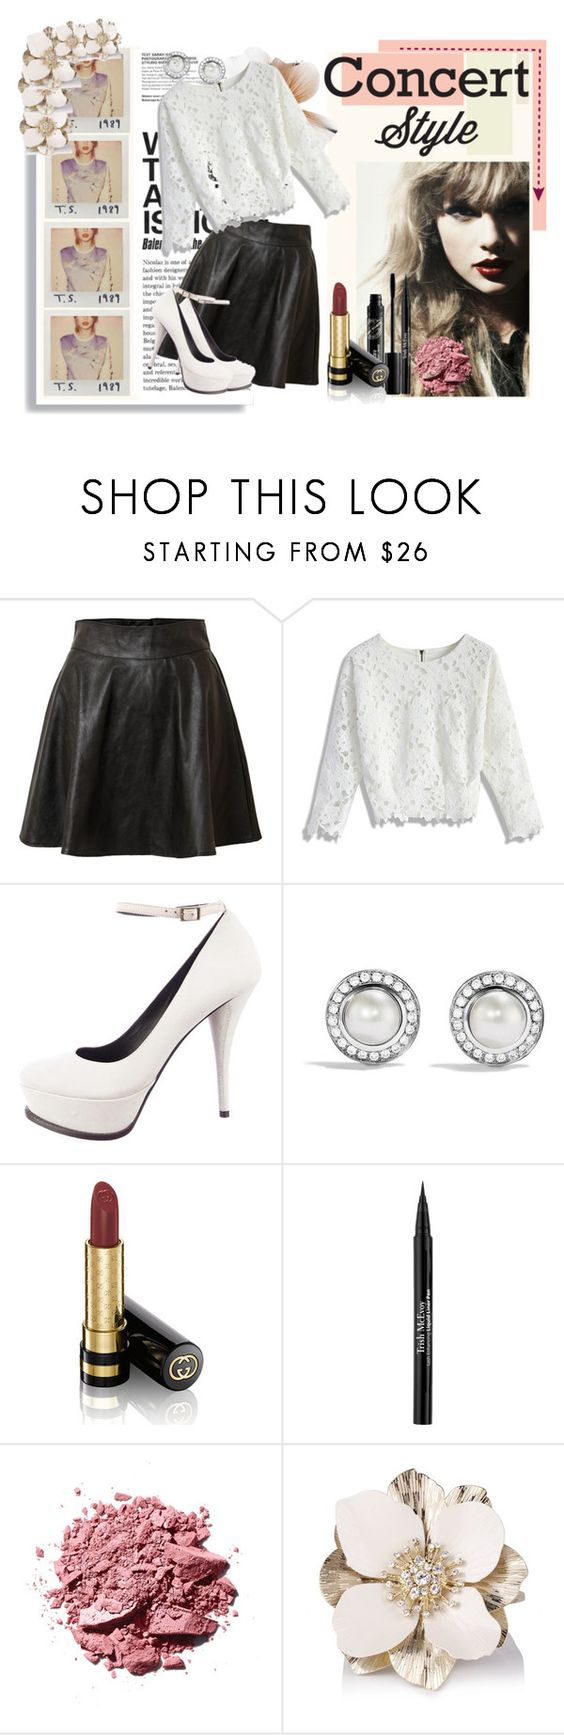 """Sweet Swiftie"" by babynessie ❤ liked on Polyvore featuring Vero Moda, Chicwish, Elizabeth and James, David Yurman, Gucci and Trish McEvoy"